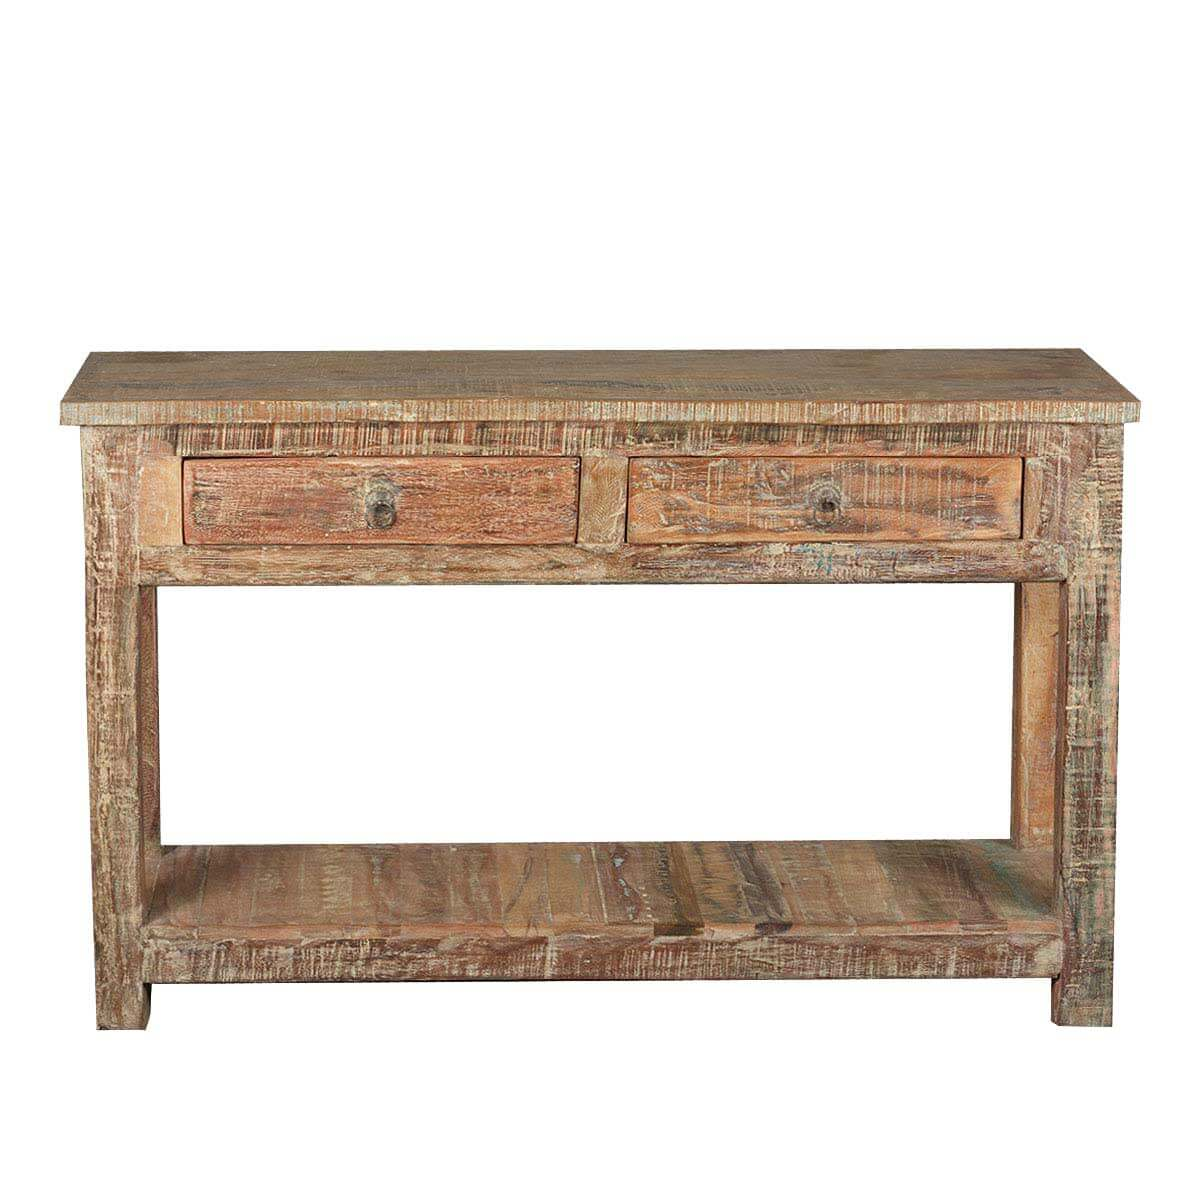 Rustic reclaimed wood naturally distressed hall console table for Hall console table